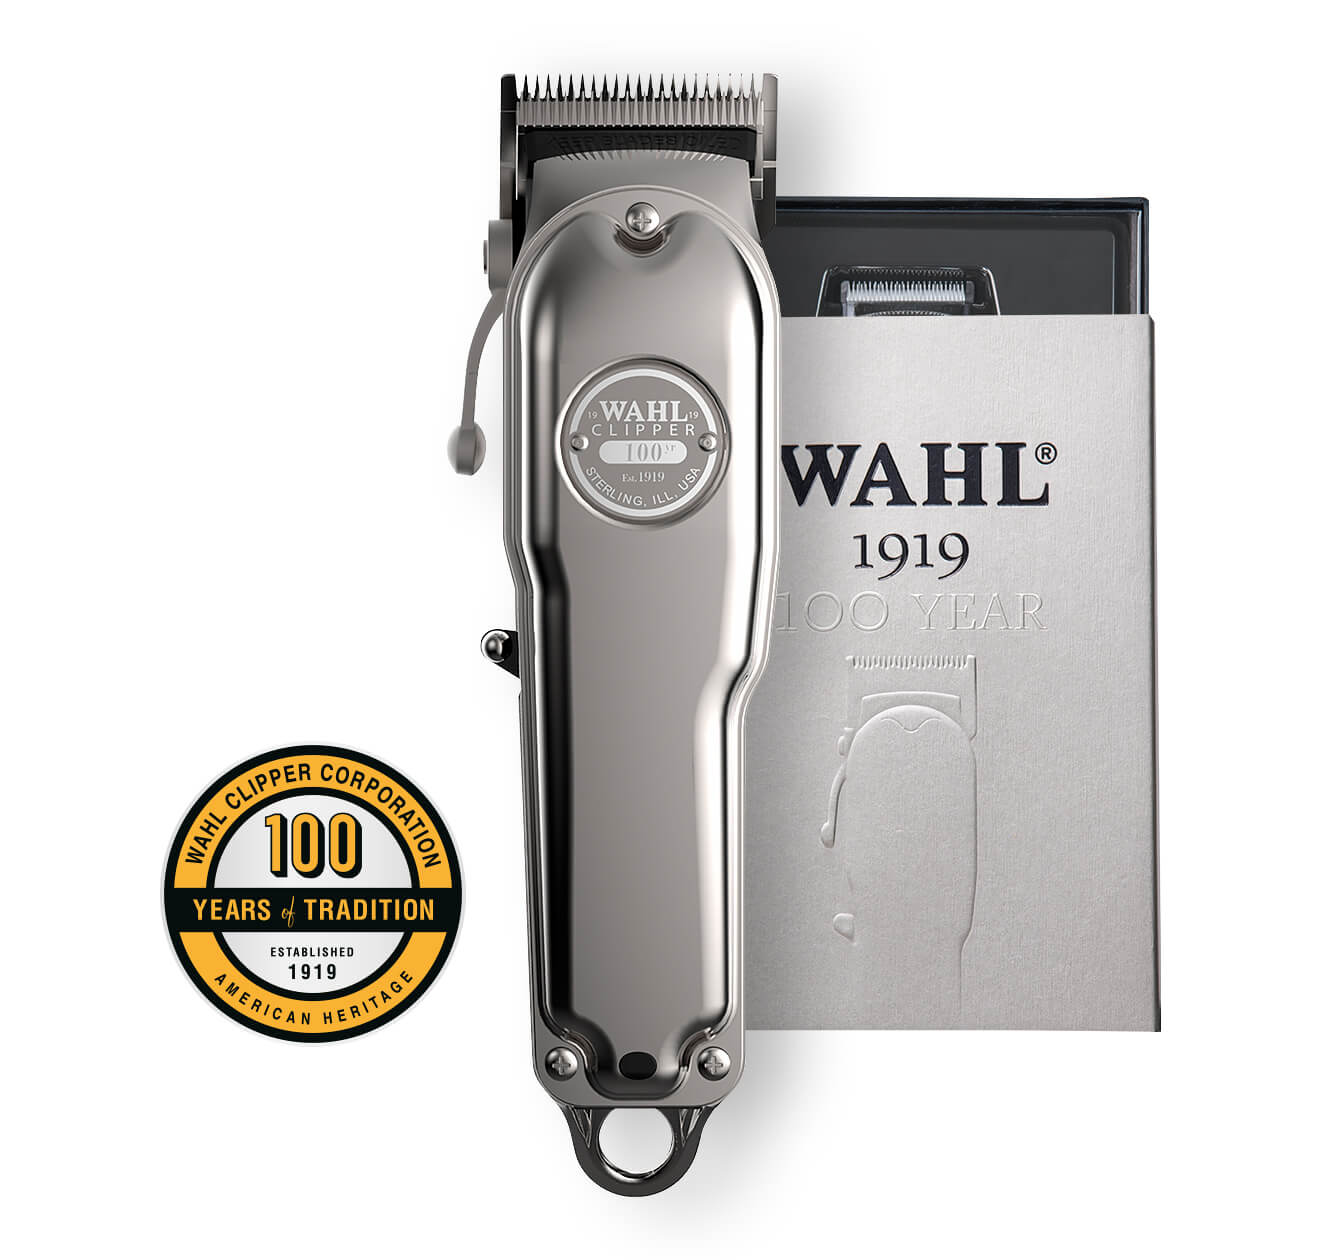 wahl 1919 anniversary clipper